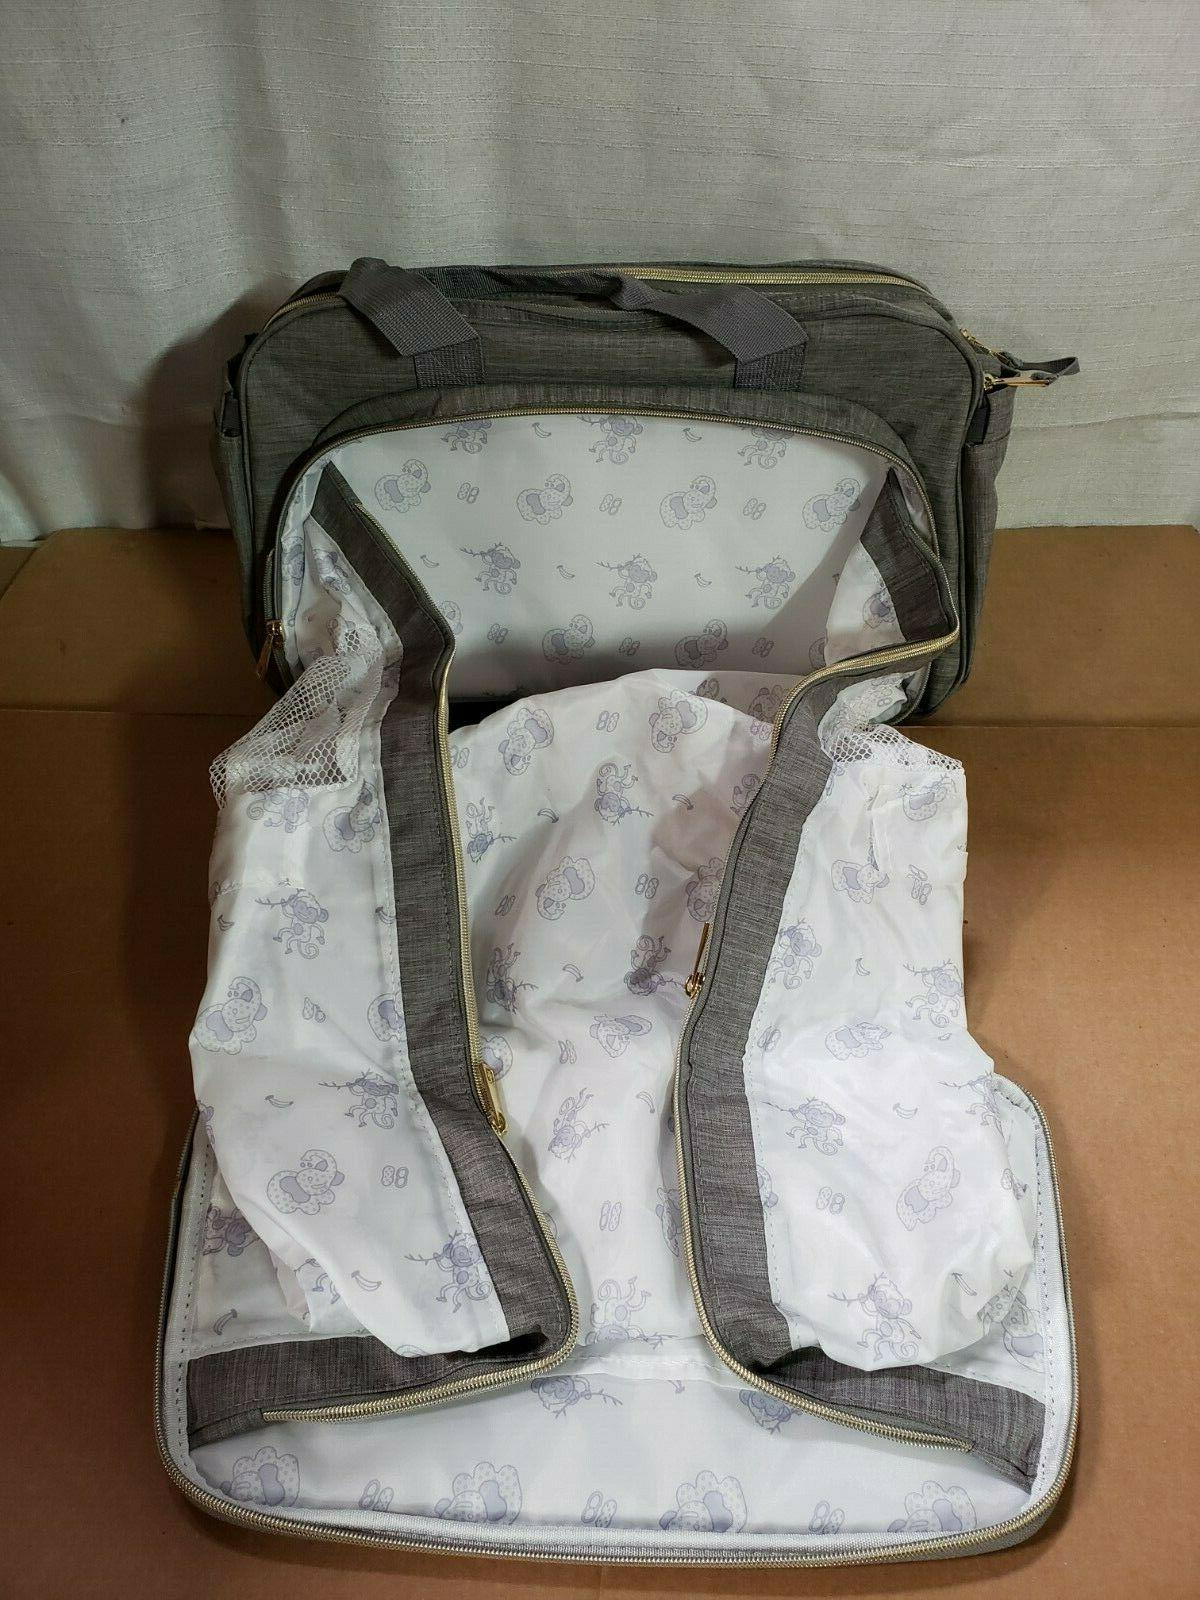 4-in-1 Convertible Diaper Bag Baby Bag -Includes